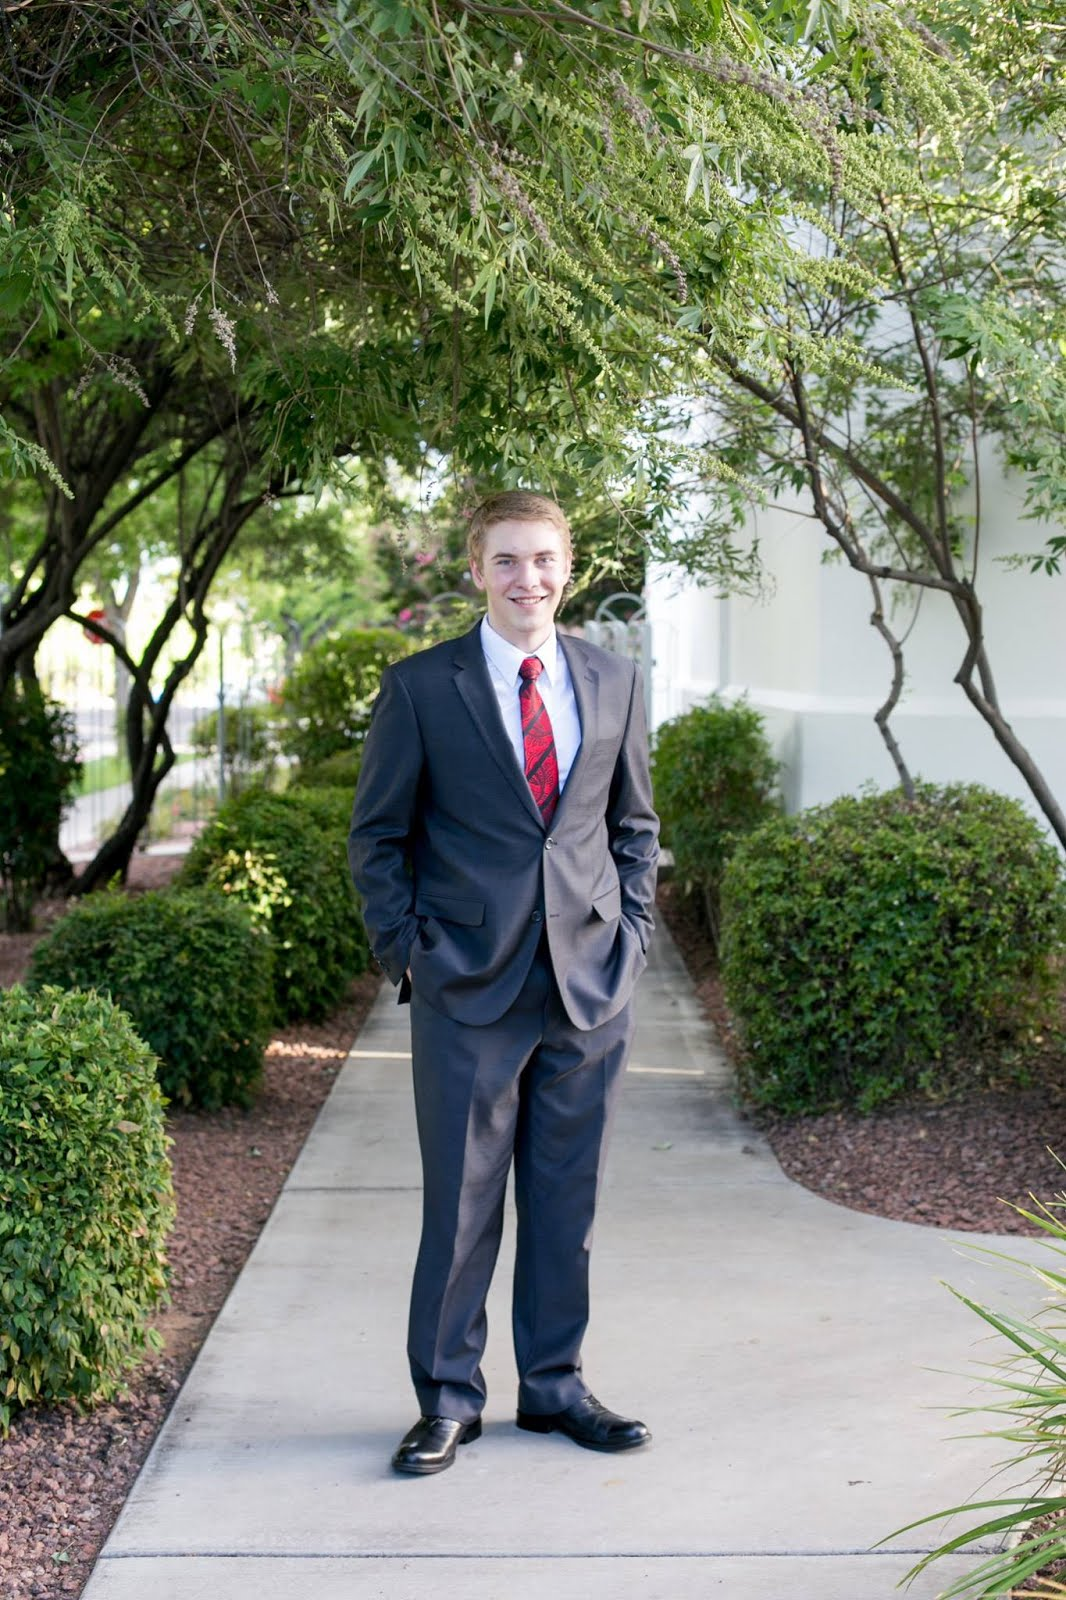 Elder Kaden L. Smith